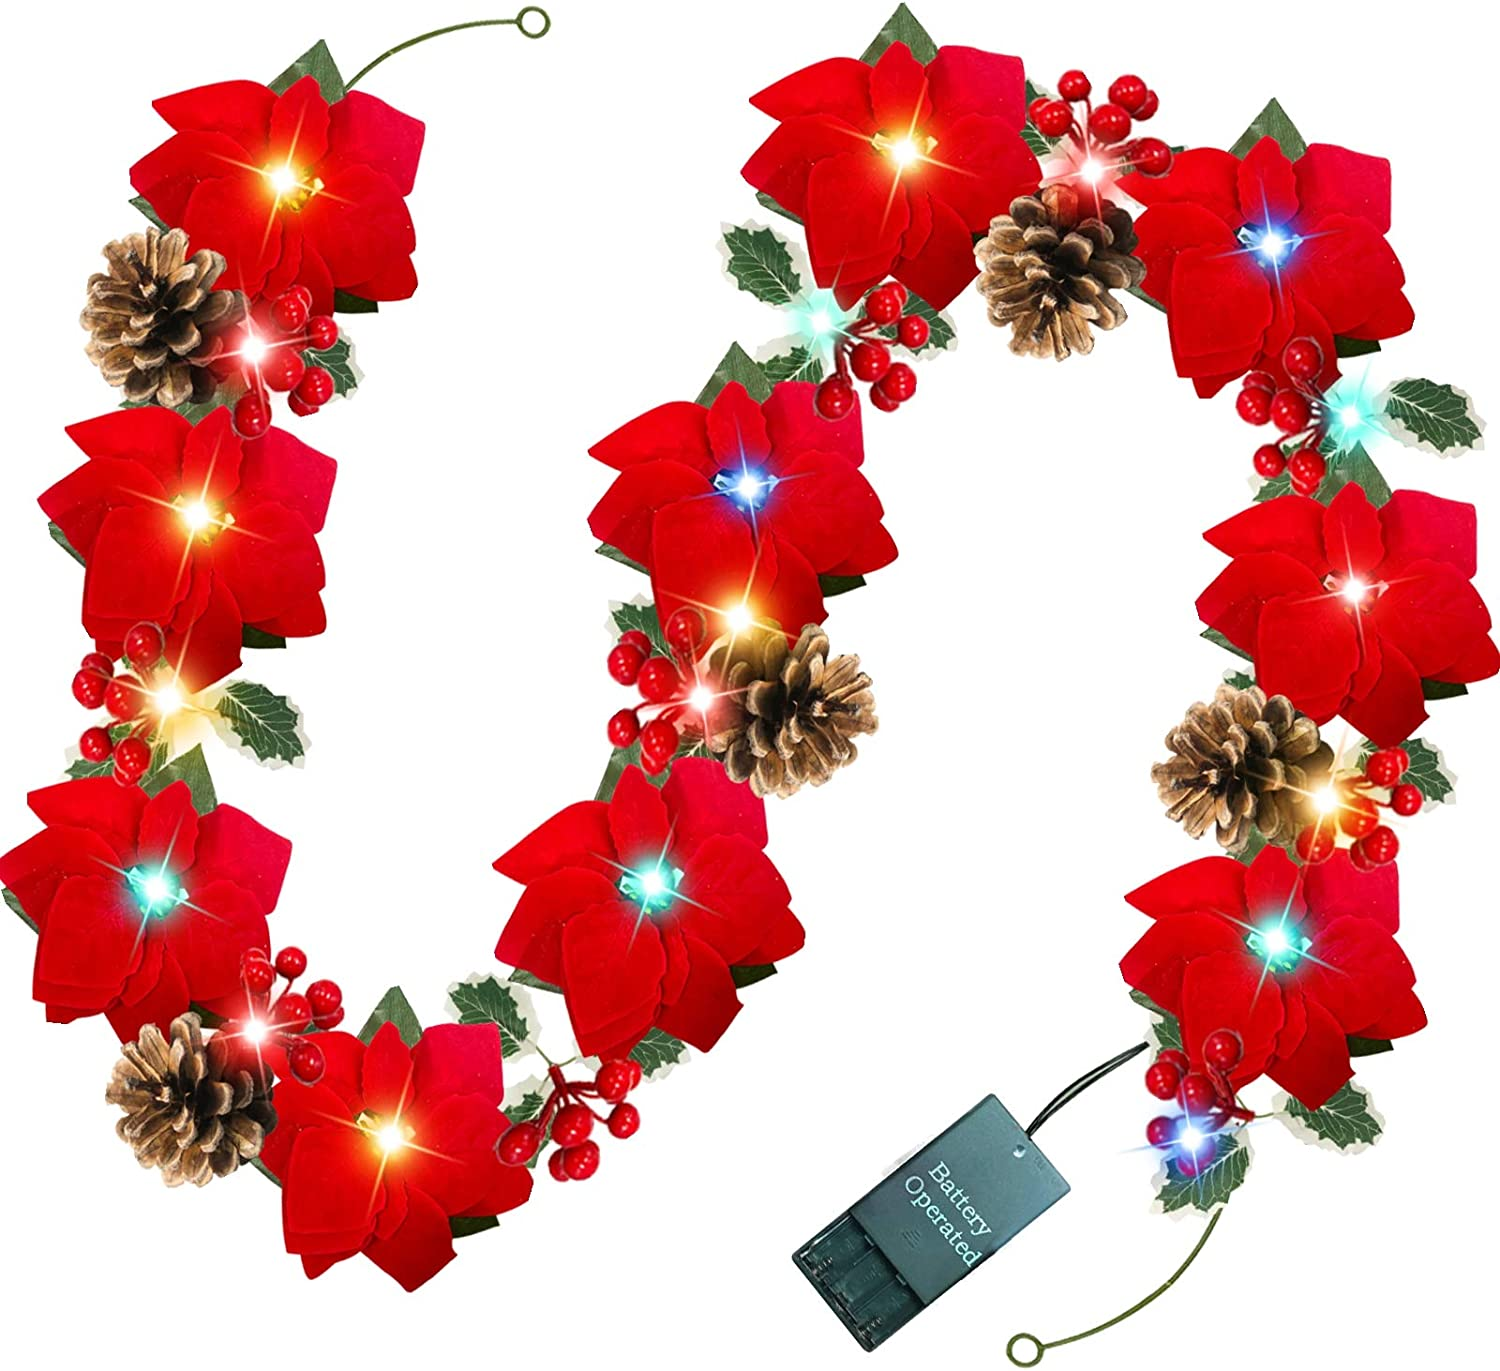 TURNMEON 6FT Christmas Poinsettia Garland with 20 Lights 10 Poinsettia 110 Glitter Golden Berry 5 Pinecones 60 Leaves Battery Operated Christmas Decor Indoor Outdoor Mantle Holiday Decor (Color)